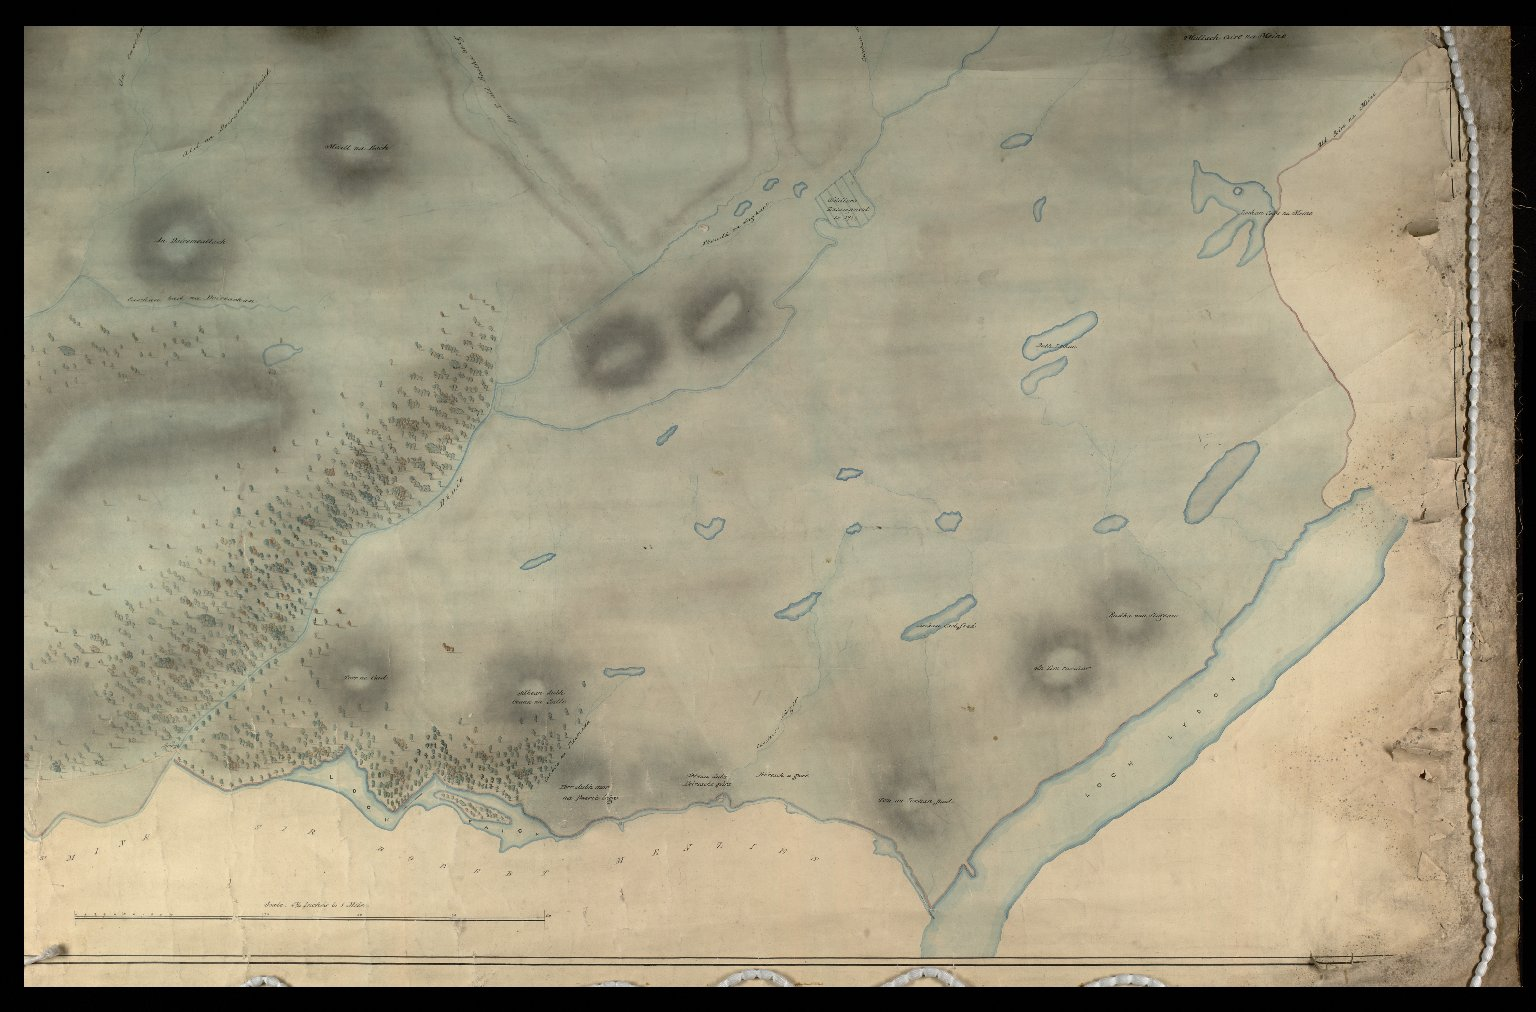 A Plan of Part of the Barony of Sliosgarbh [3 of 4]